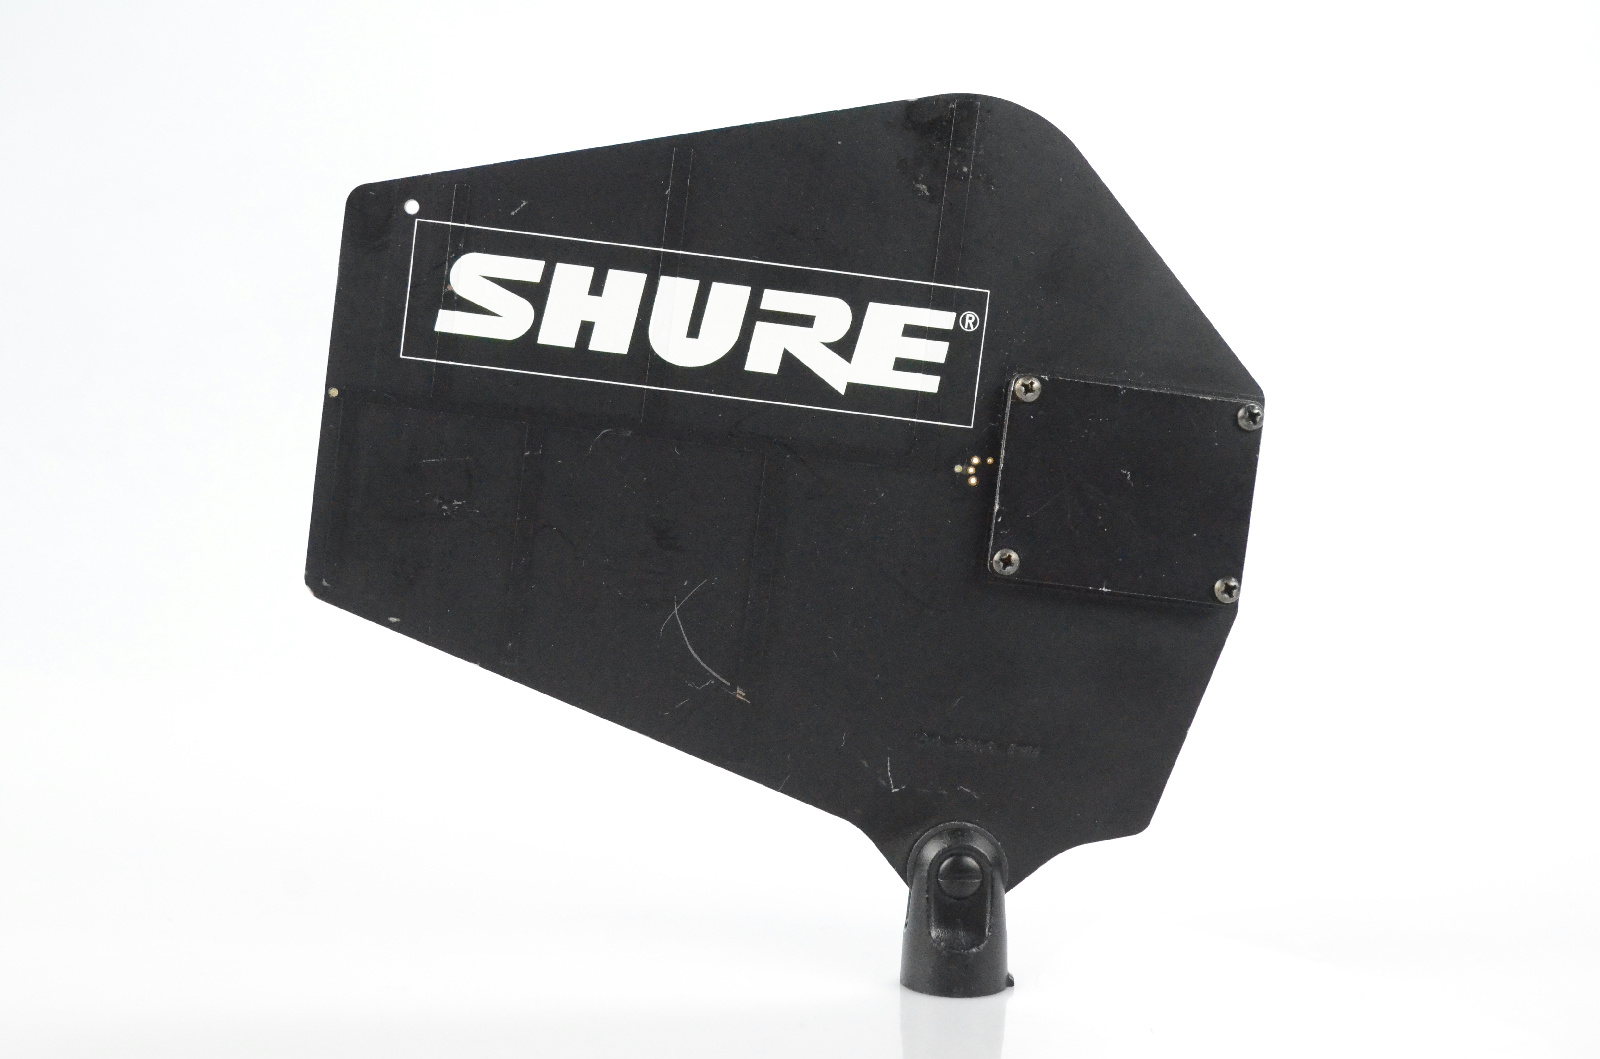 Shure UA870A Active UHF Wireless Antenna 782-810 MHZ Owned by Maroon 5 #33488